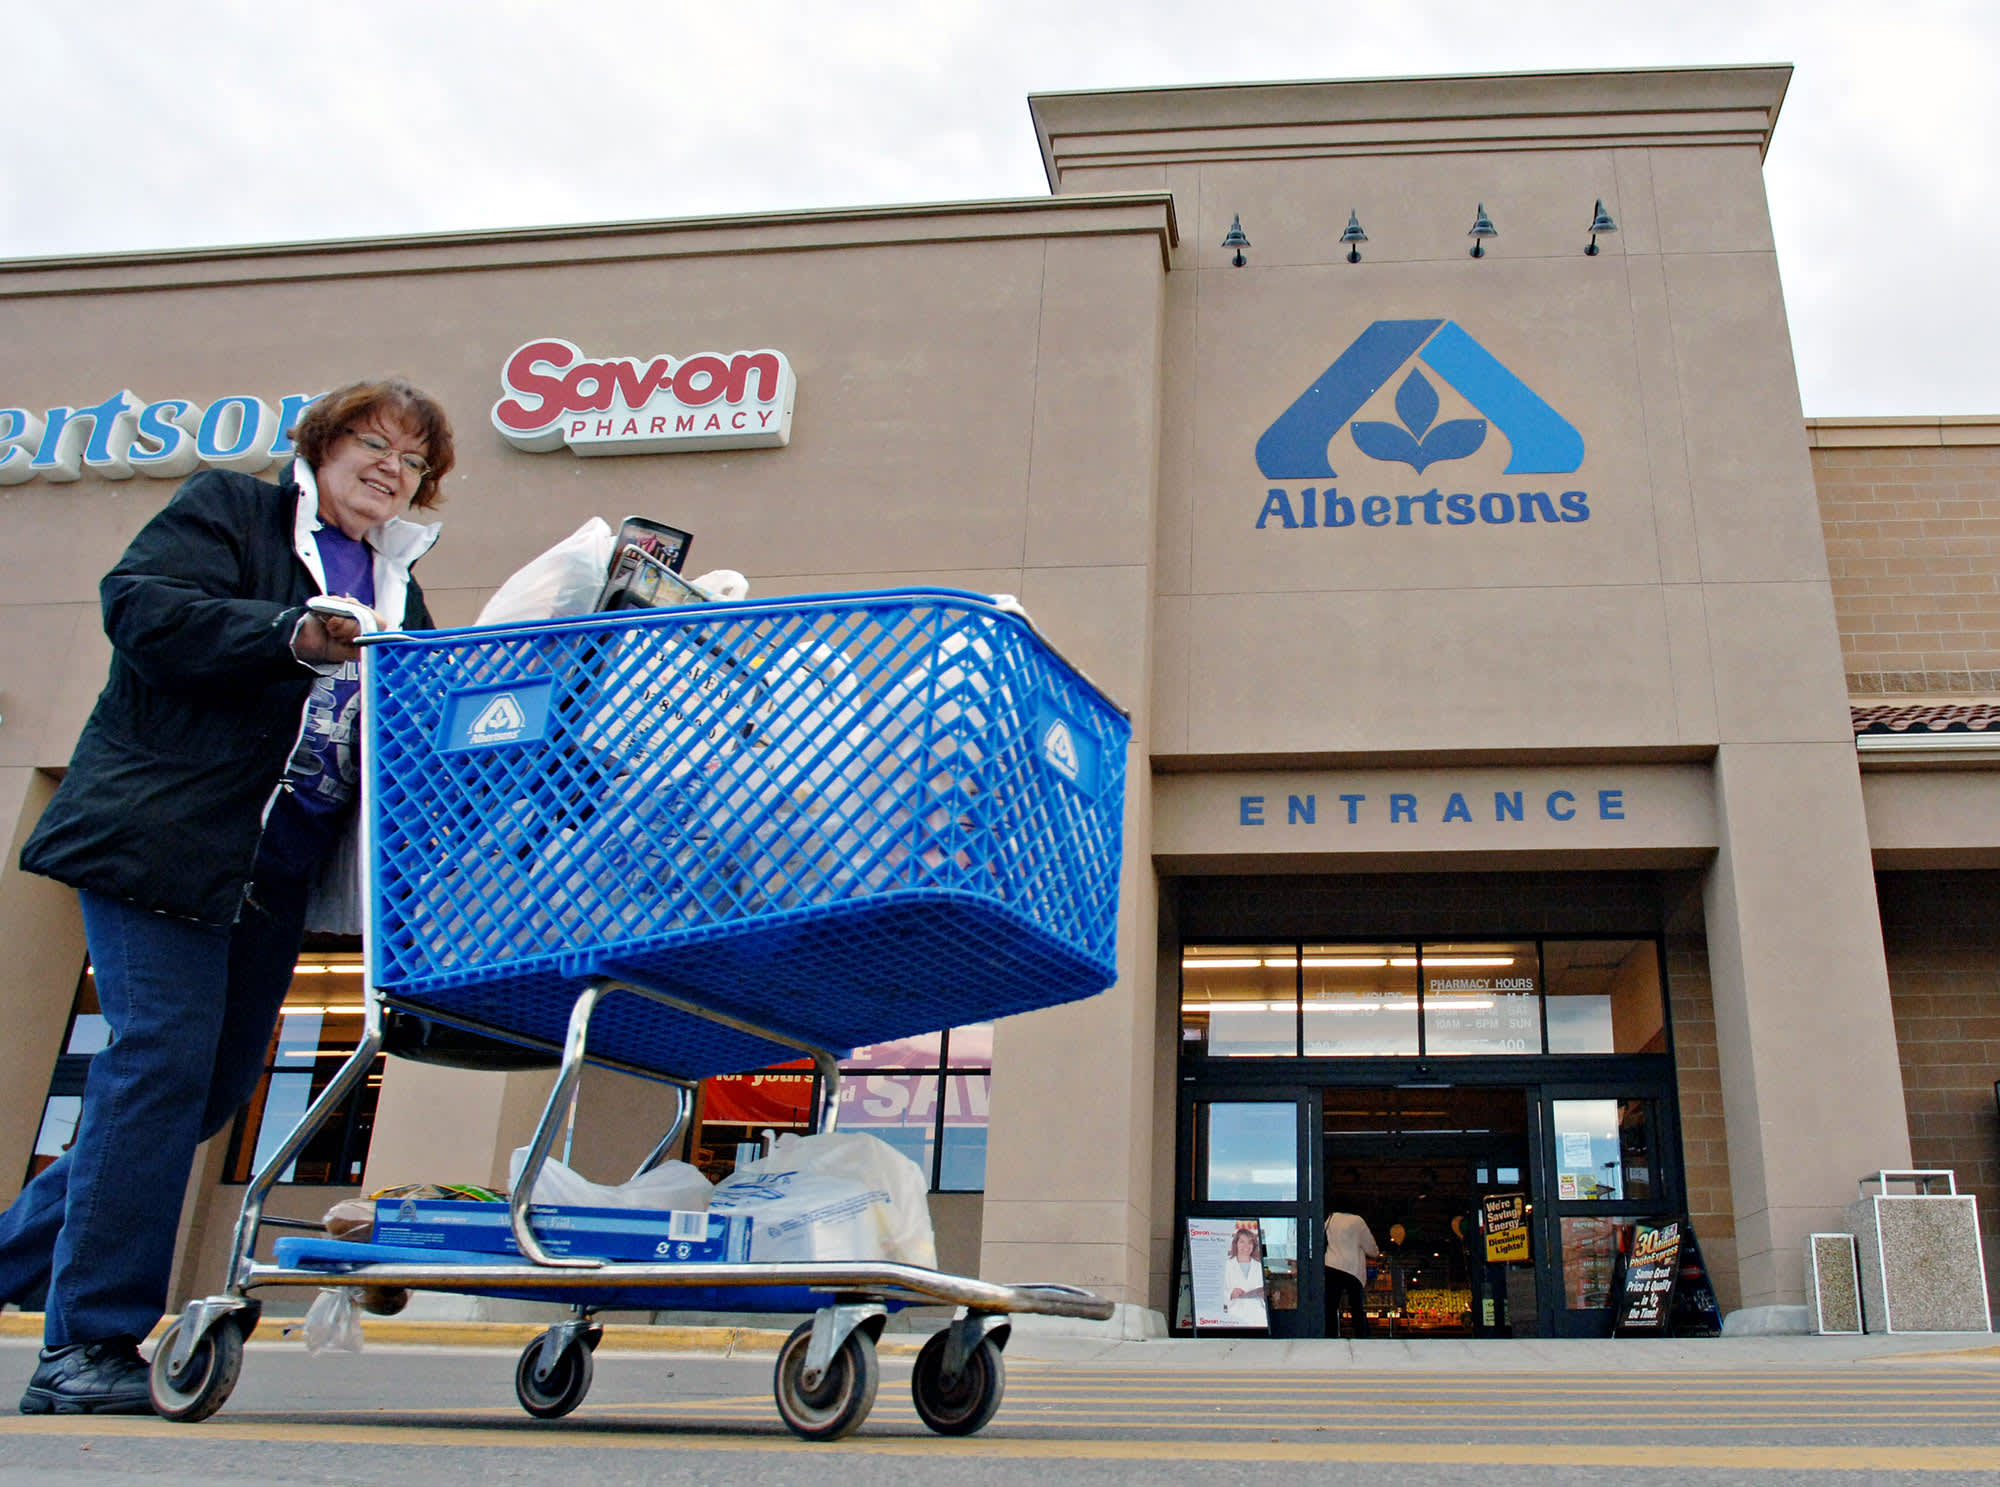 After aborted Rite Aid deal, Albertsons faces rocky path